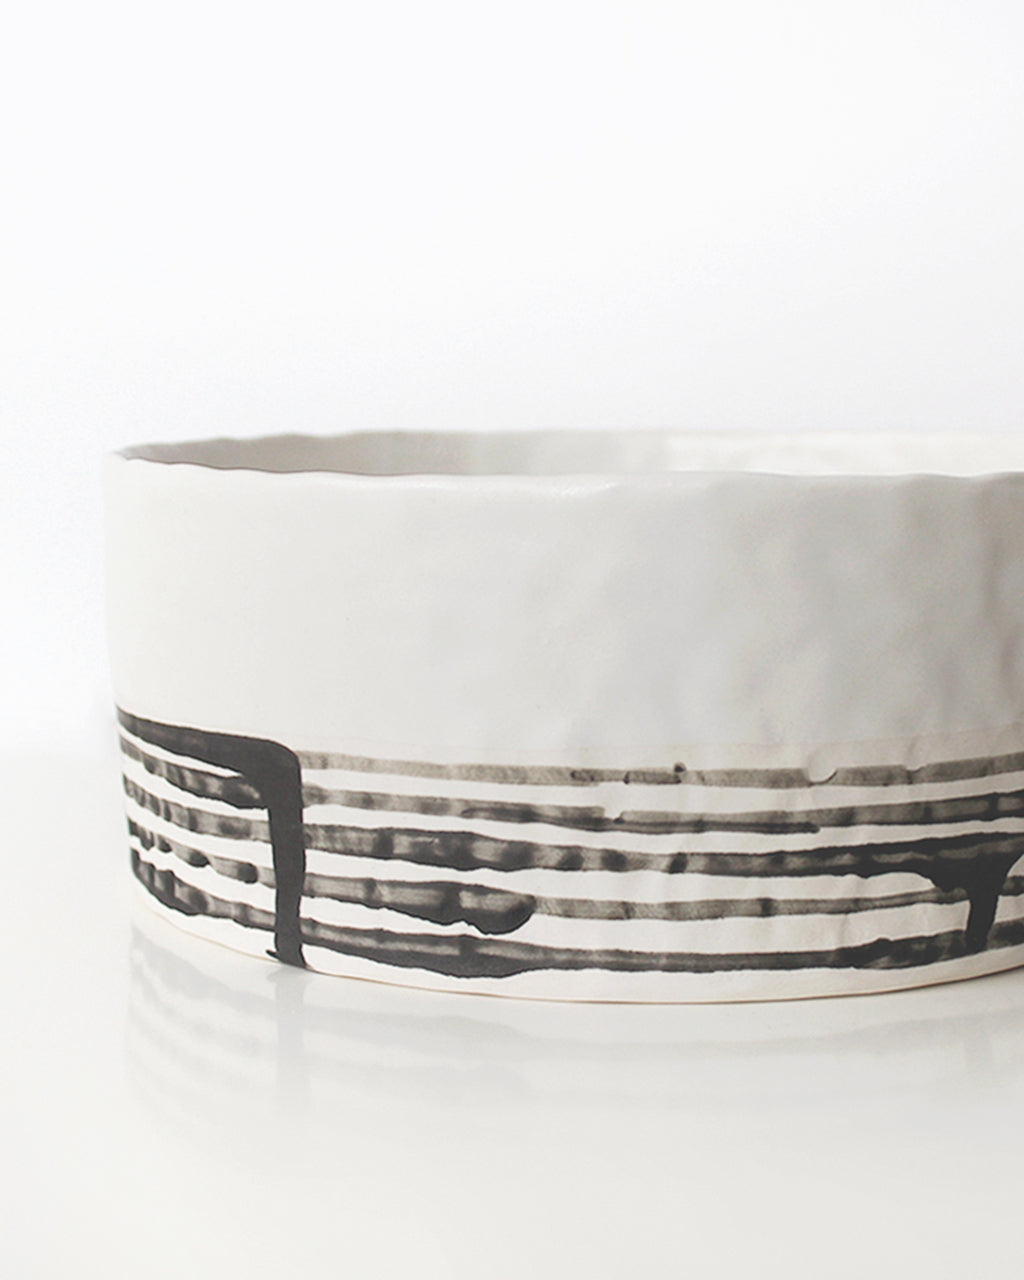 White & Black Lines Large Serving Bowl - Elizabeth Benotti